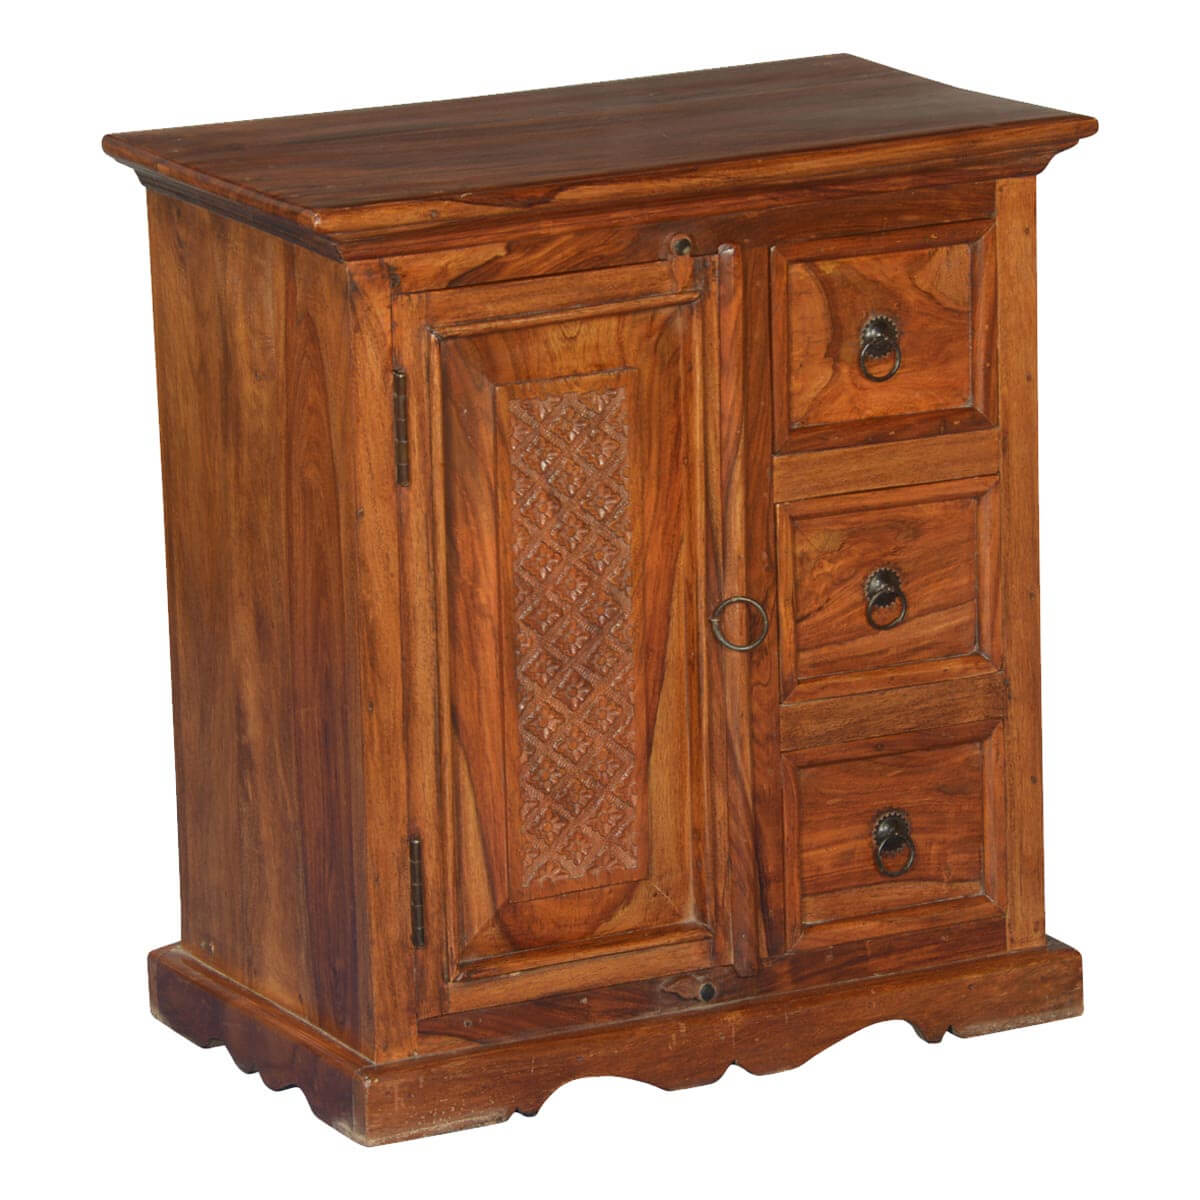 Marvelous photograph of  & Rack Dutch Colonial Solid Wood Small Cabinet Chest w 3 Drawers with #B28C19 color and 1200x1200 pixels